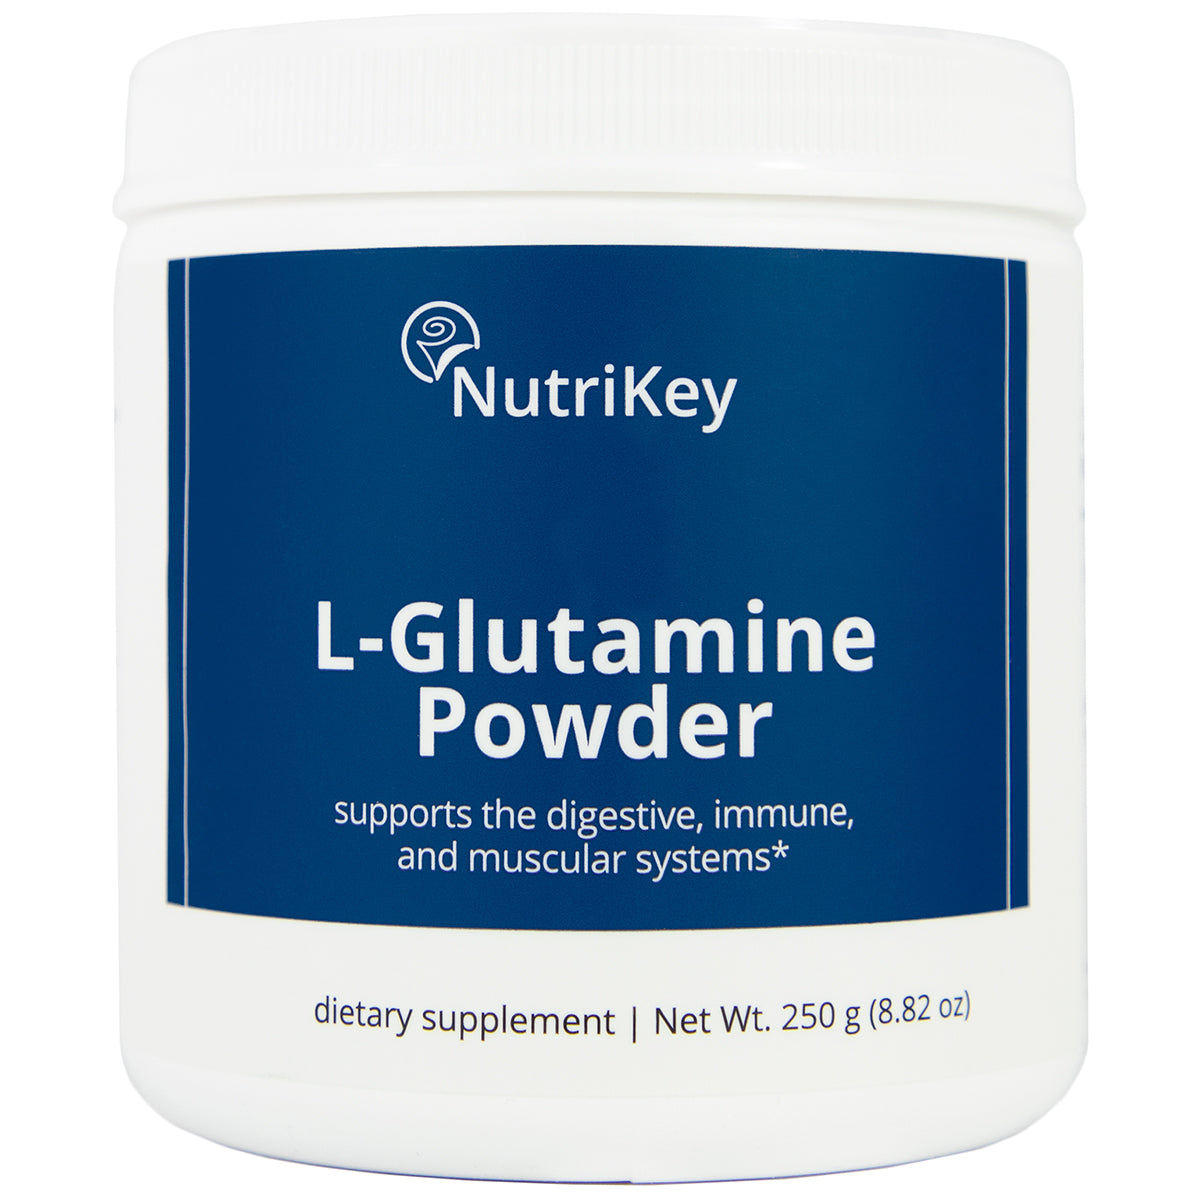 L-GLUTAMINE POWDER, 250 gm